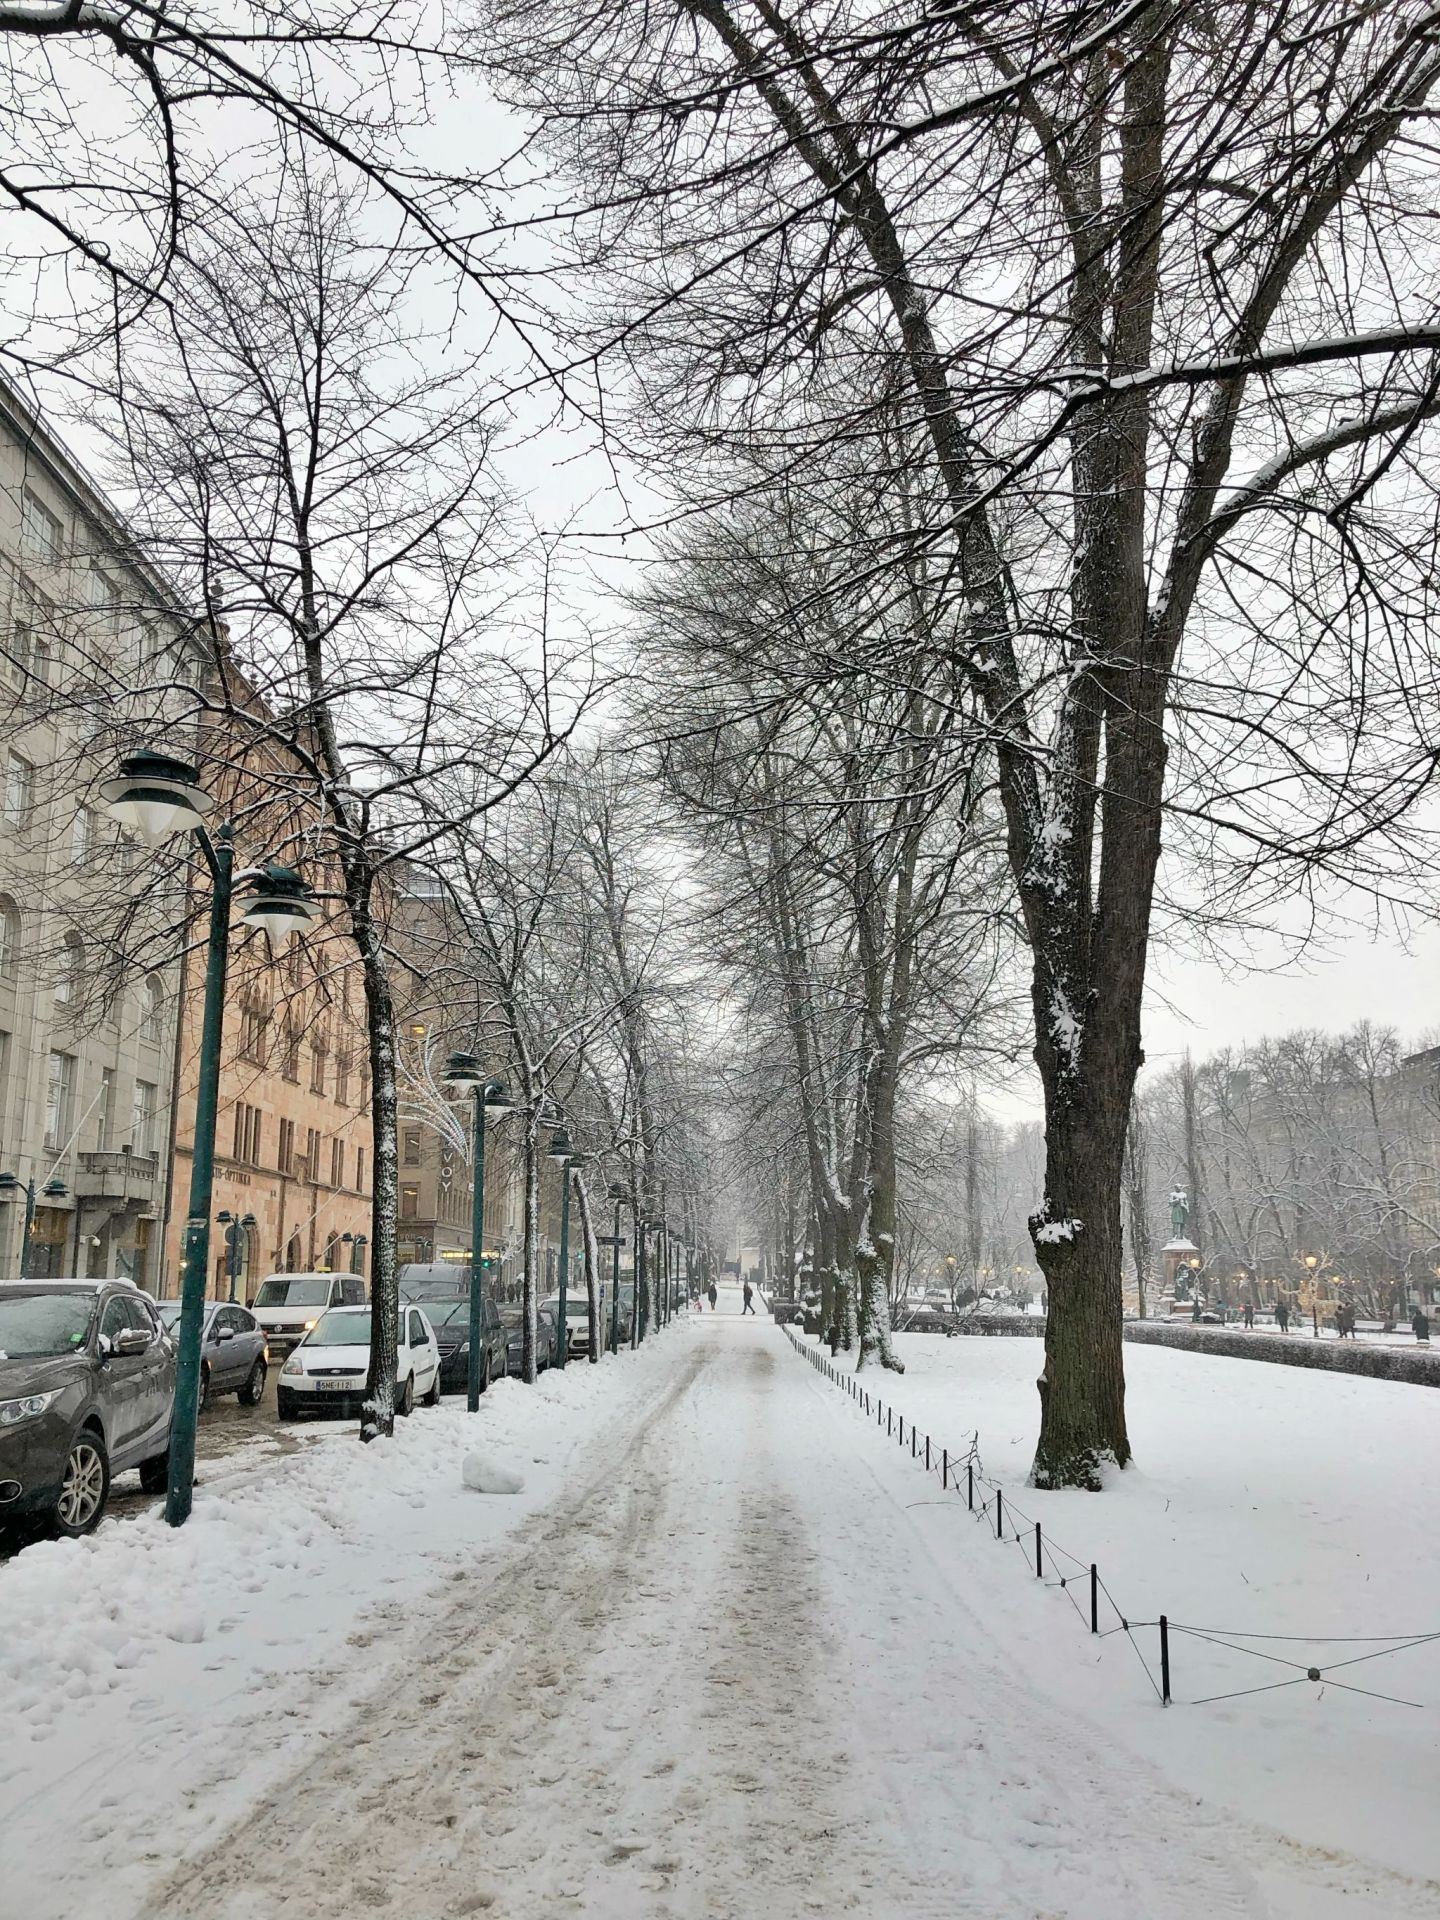 A Flying Visit to Snowy Helsinki